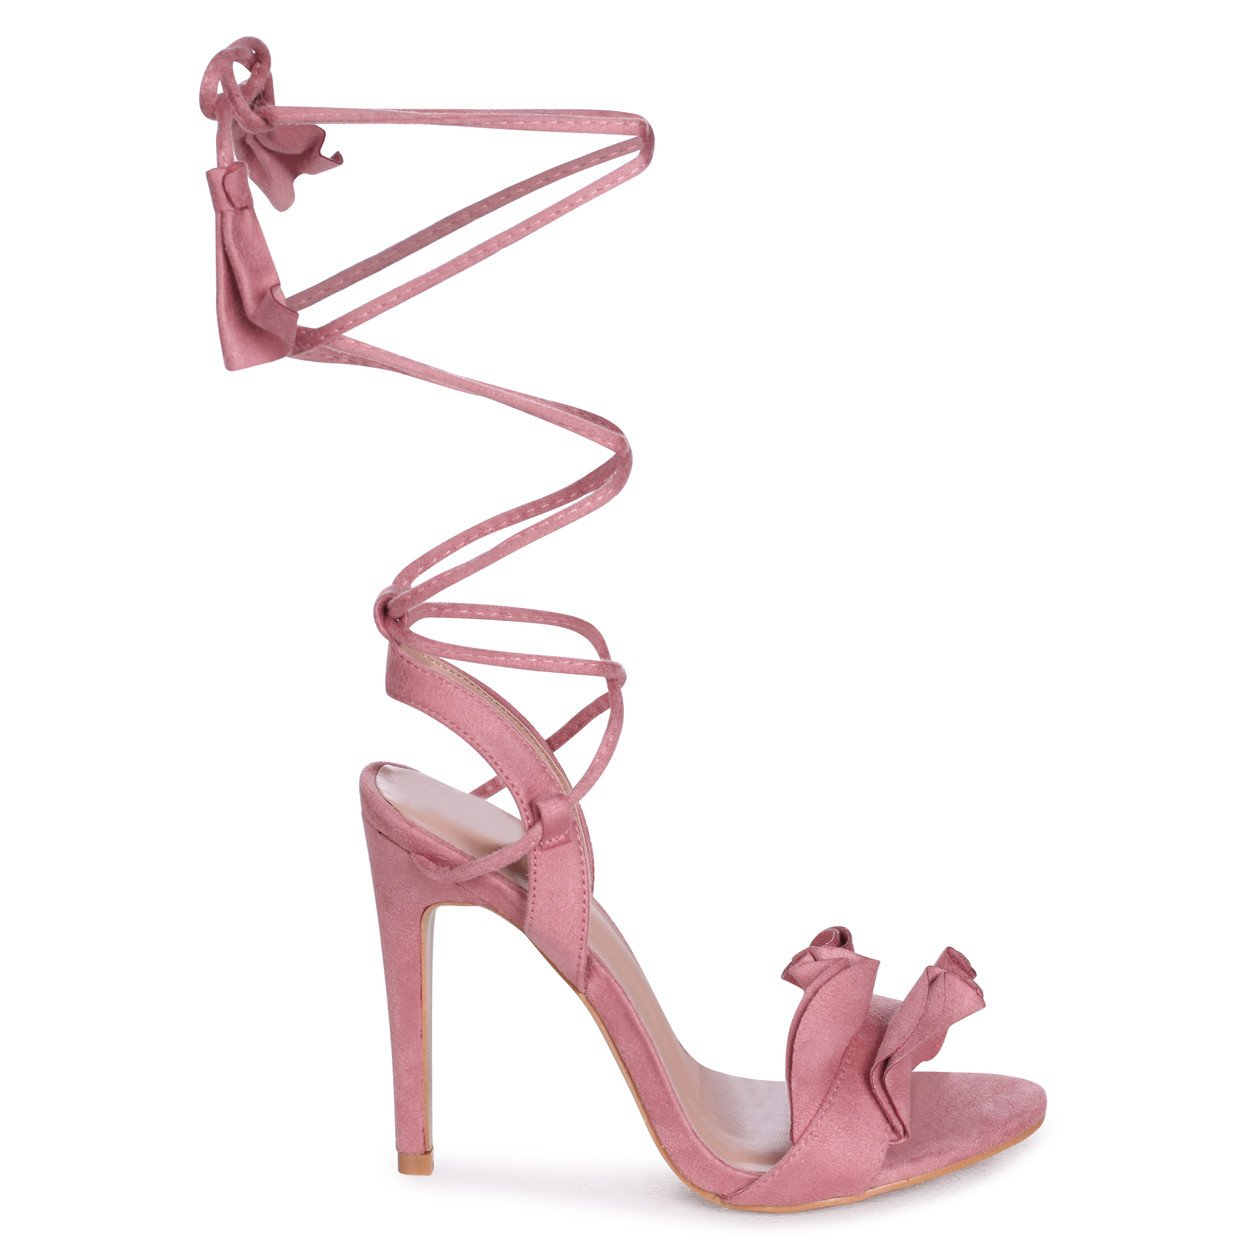 VIOLA - Pink Suede Lace Up Frill Stiletto Heel